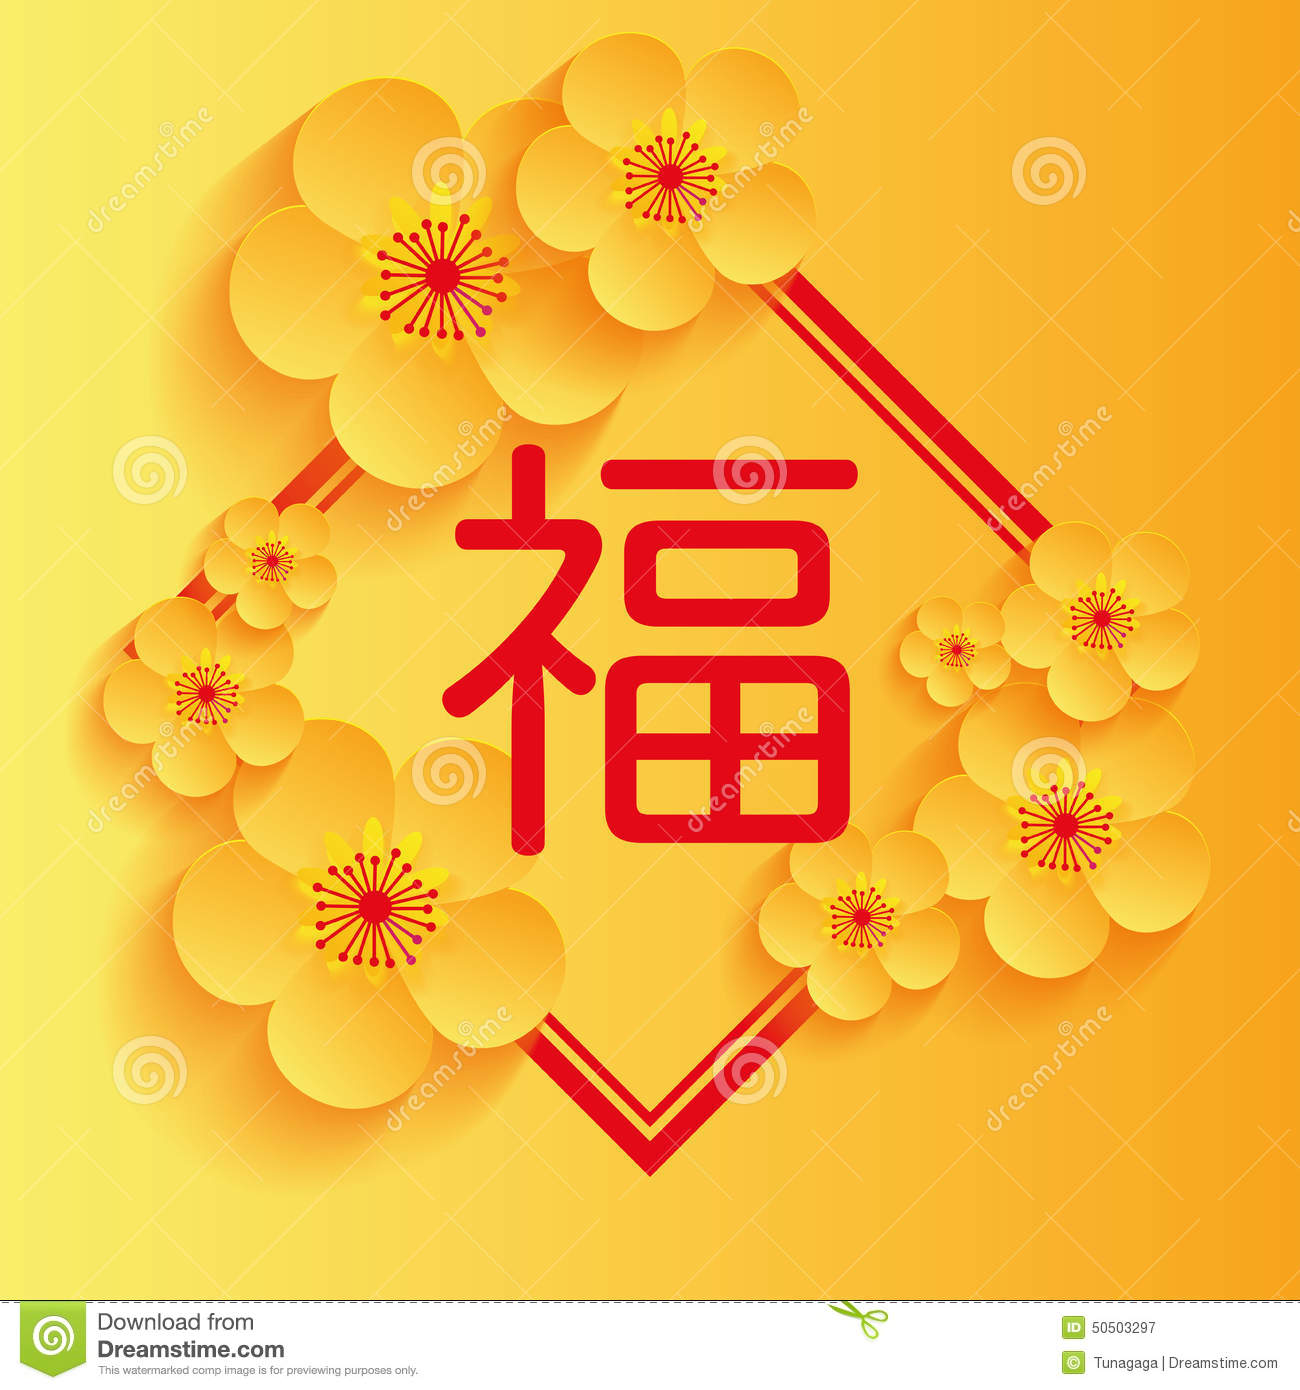 Chinese new year greeting card design stock illustration chinese new year greeting card design m4hsunfo